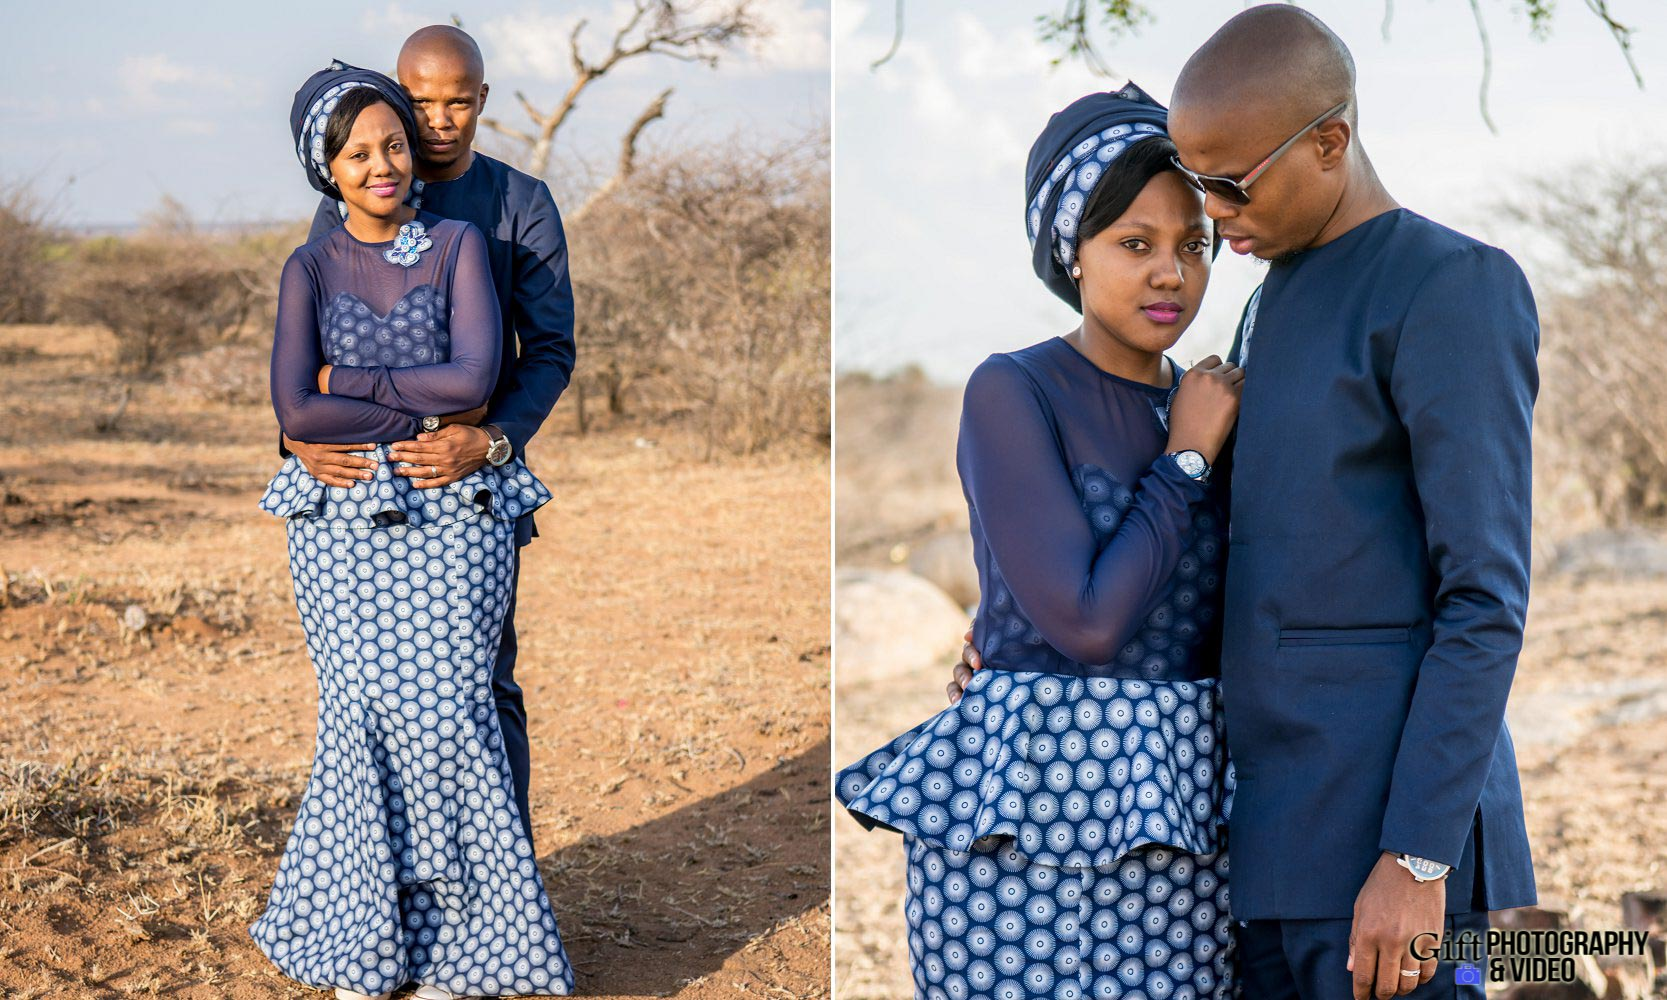 Choene & Sihle Wedding Usambara-35